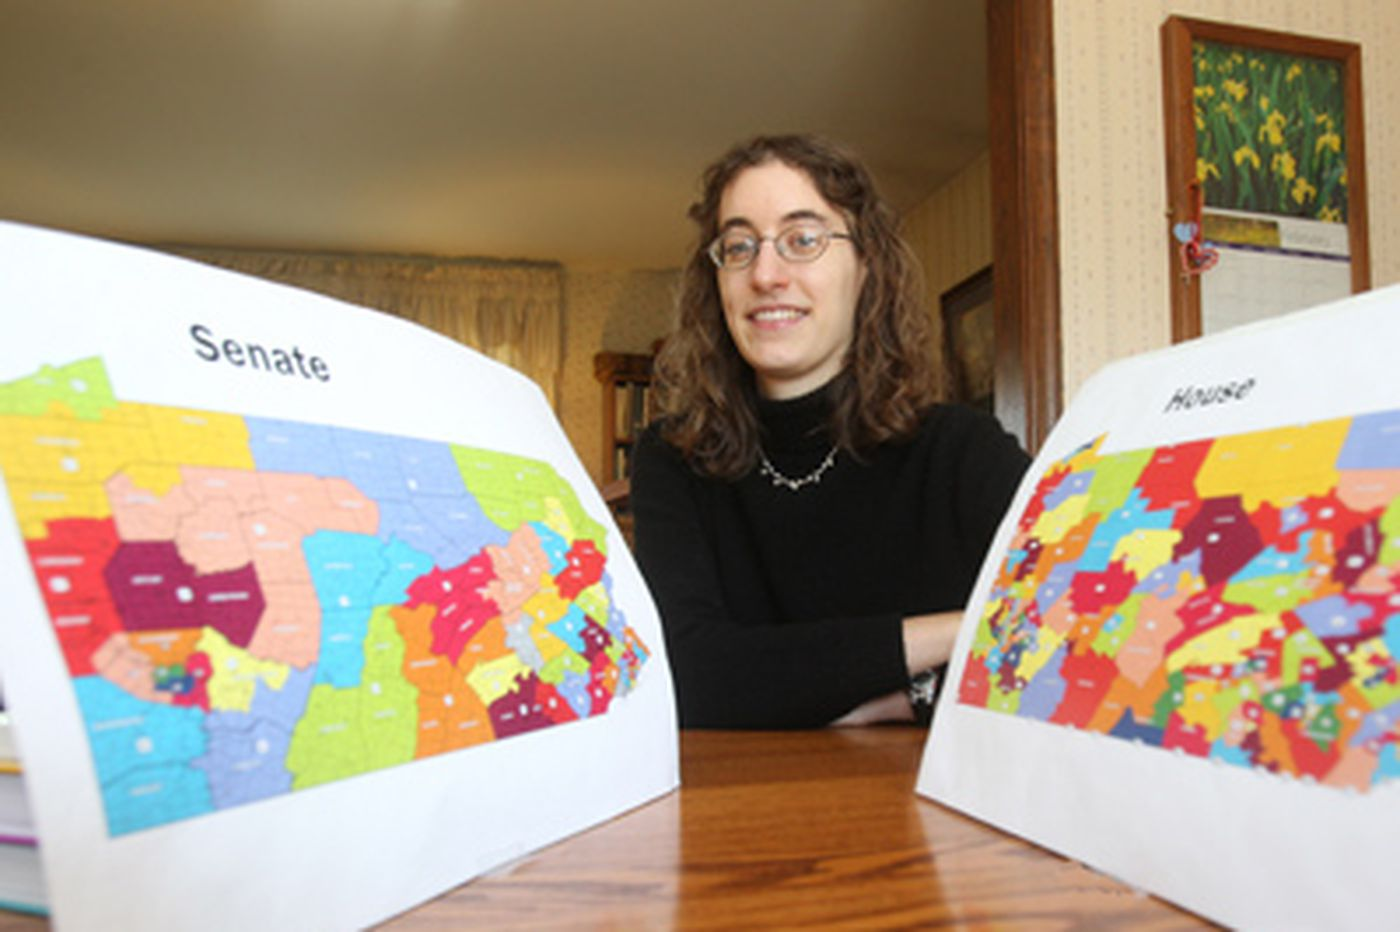 Allentown woman shows Harrisburg how to make a legislative map